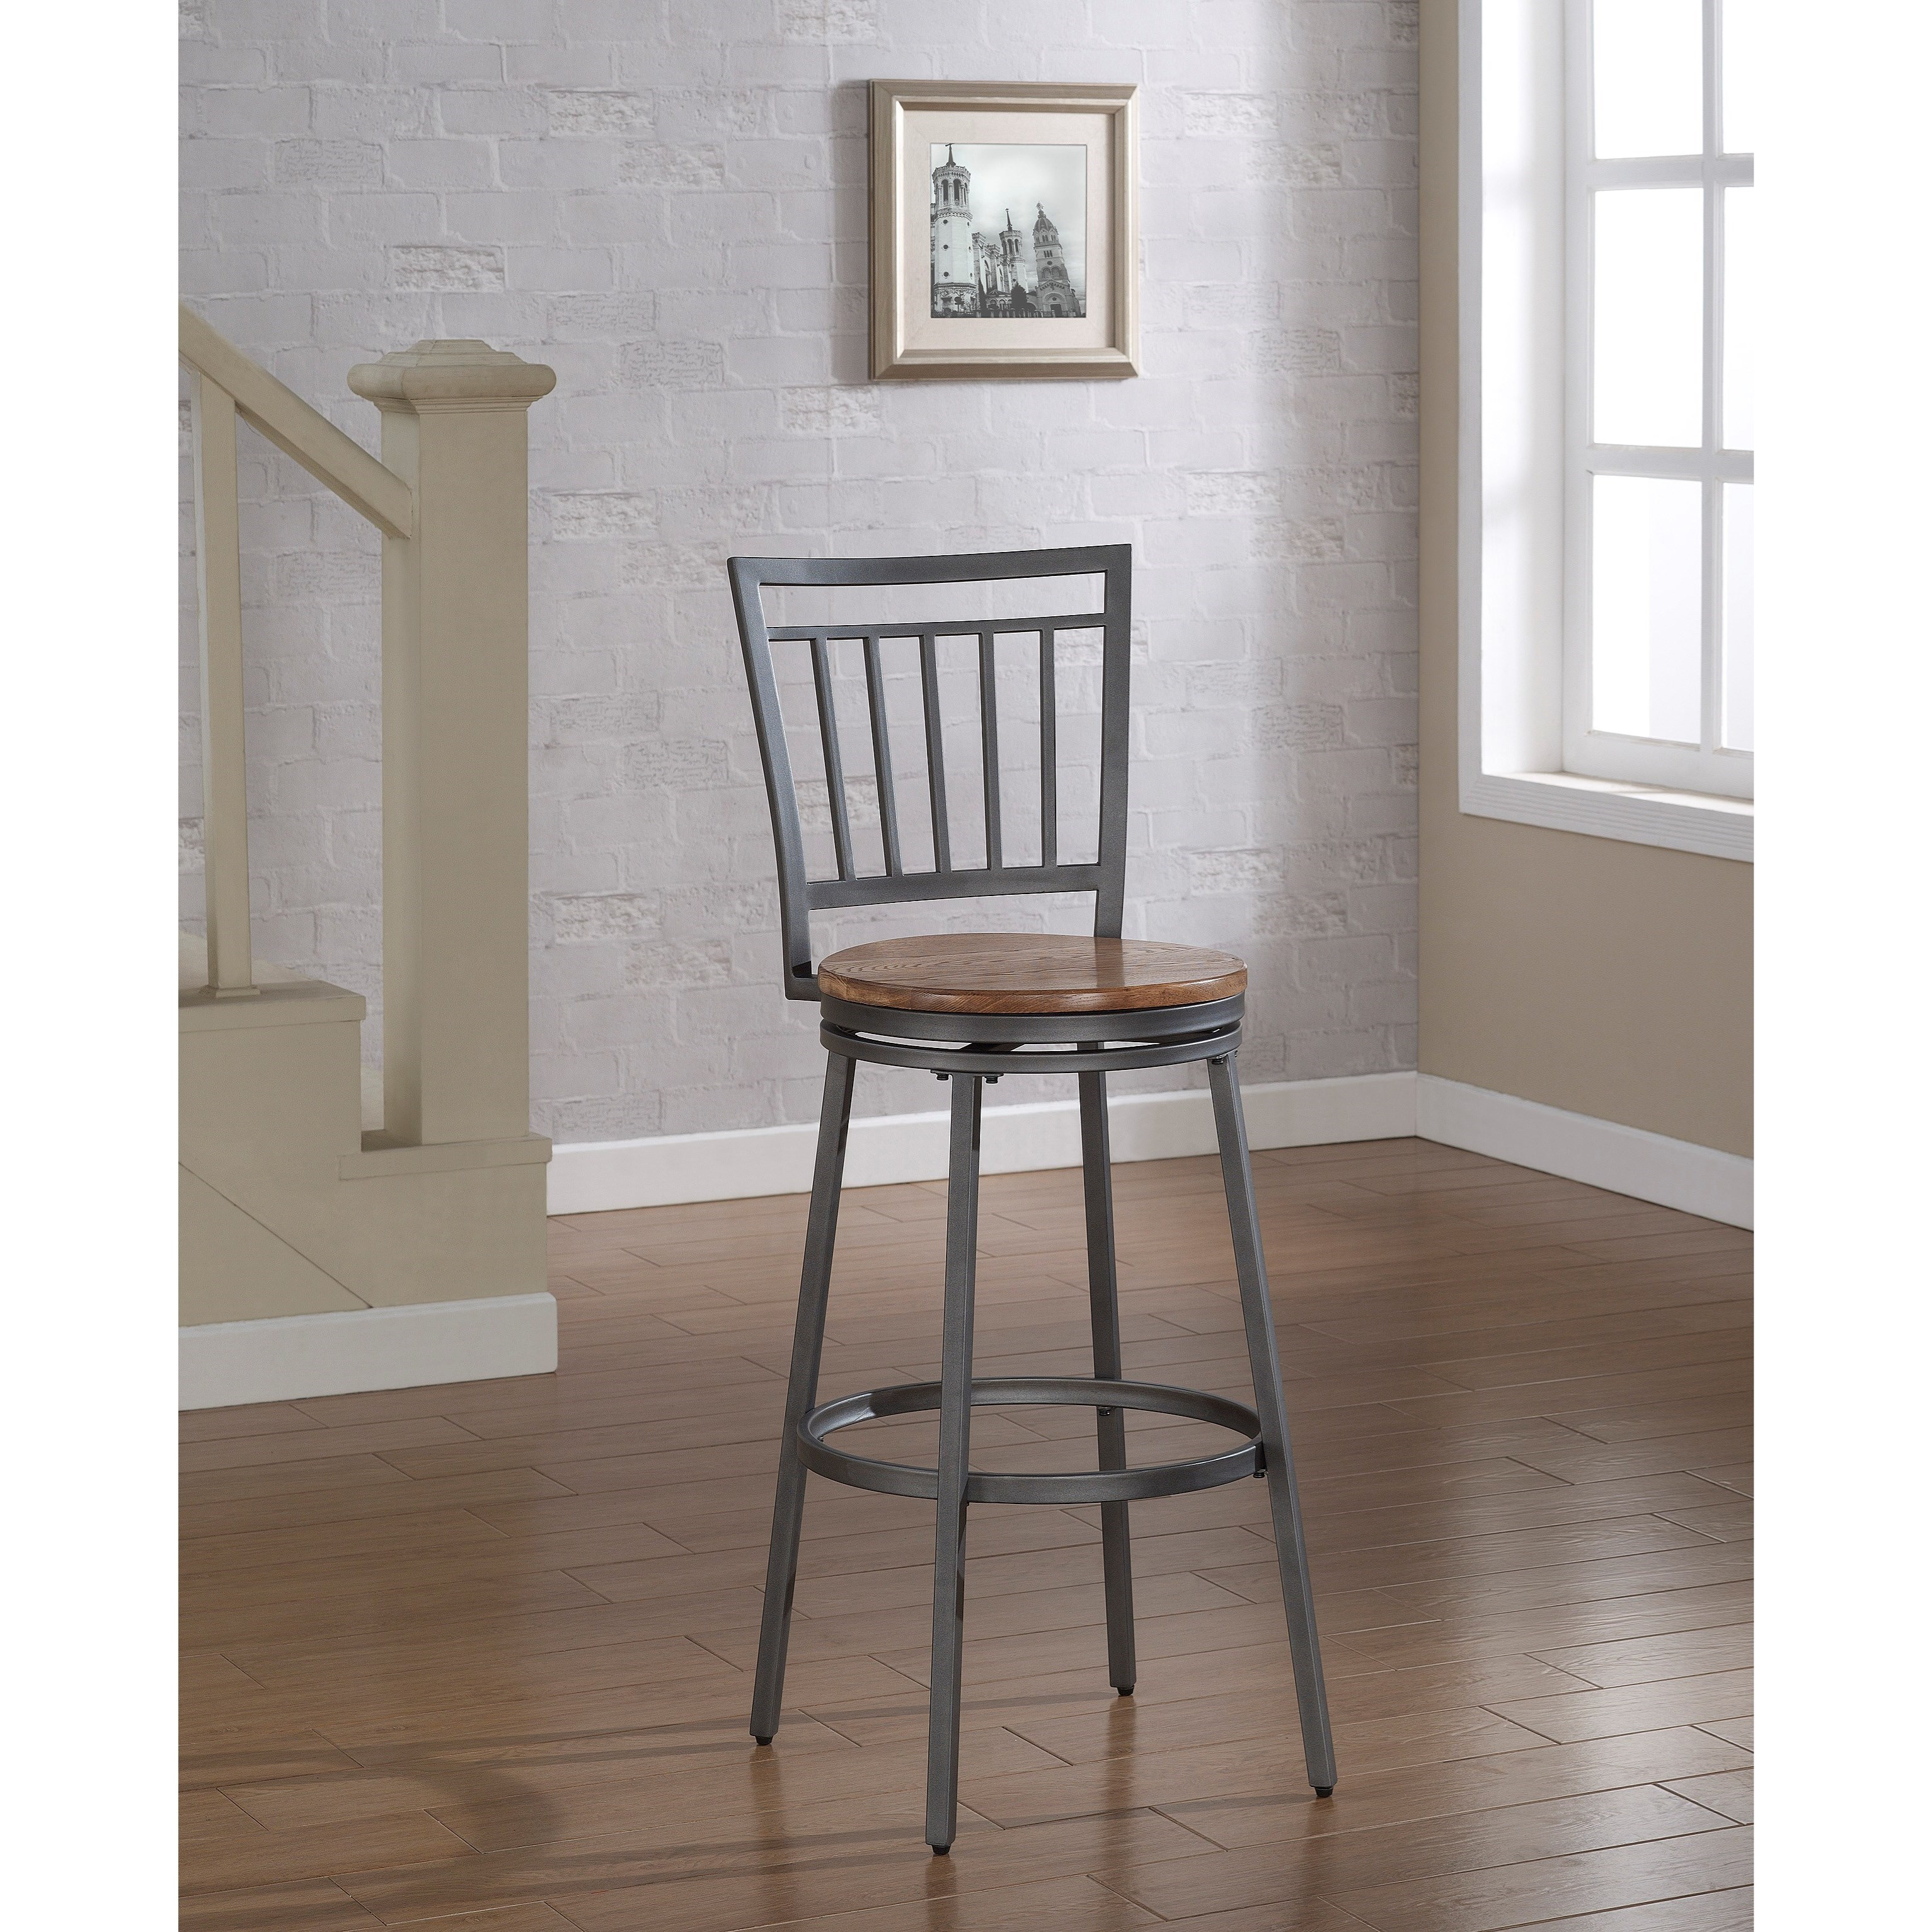 American Woodcrafters Barstools Stool with Slat Back and Metal Frame - Item Number: B1-101-30W